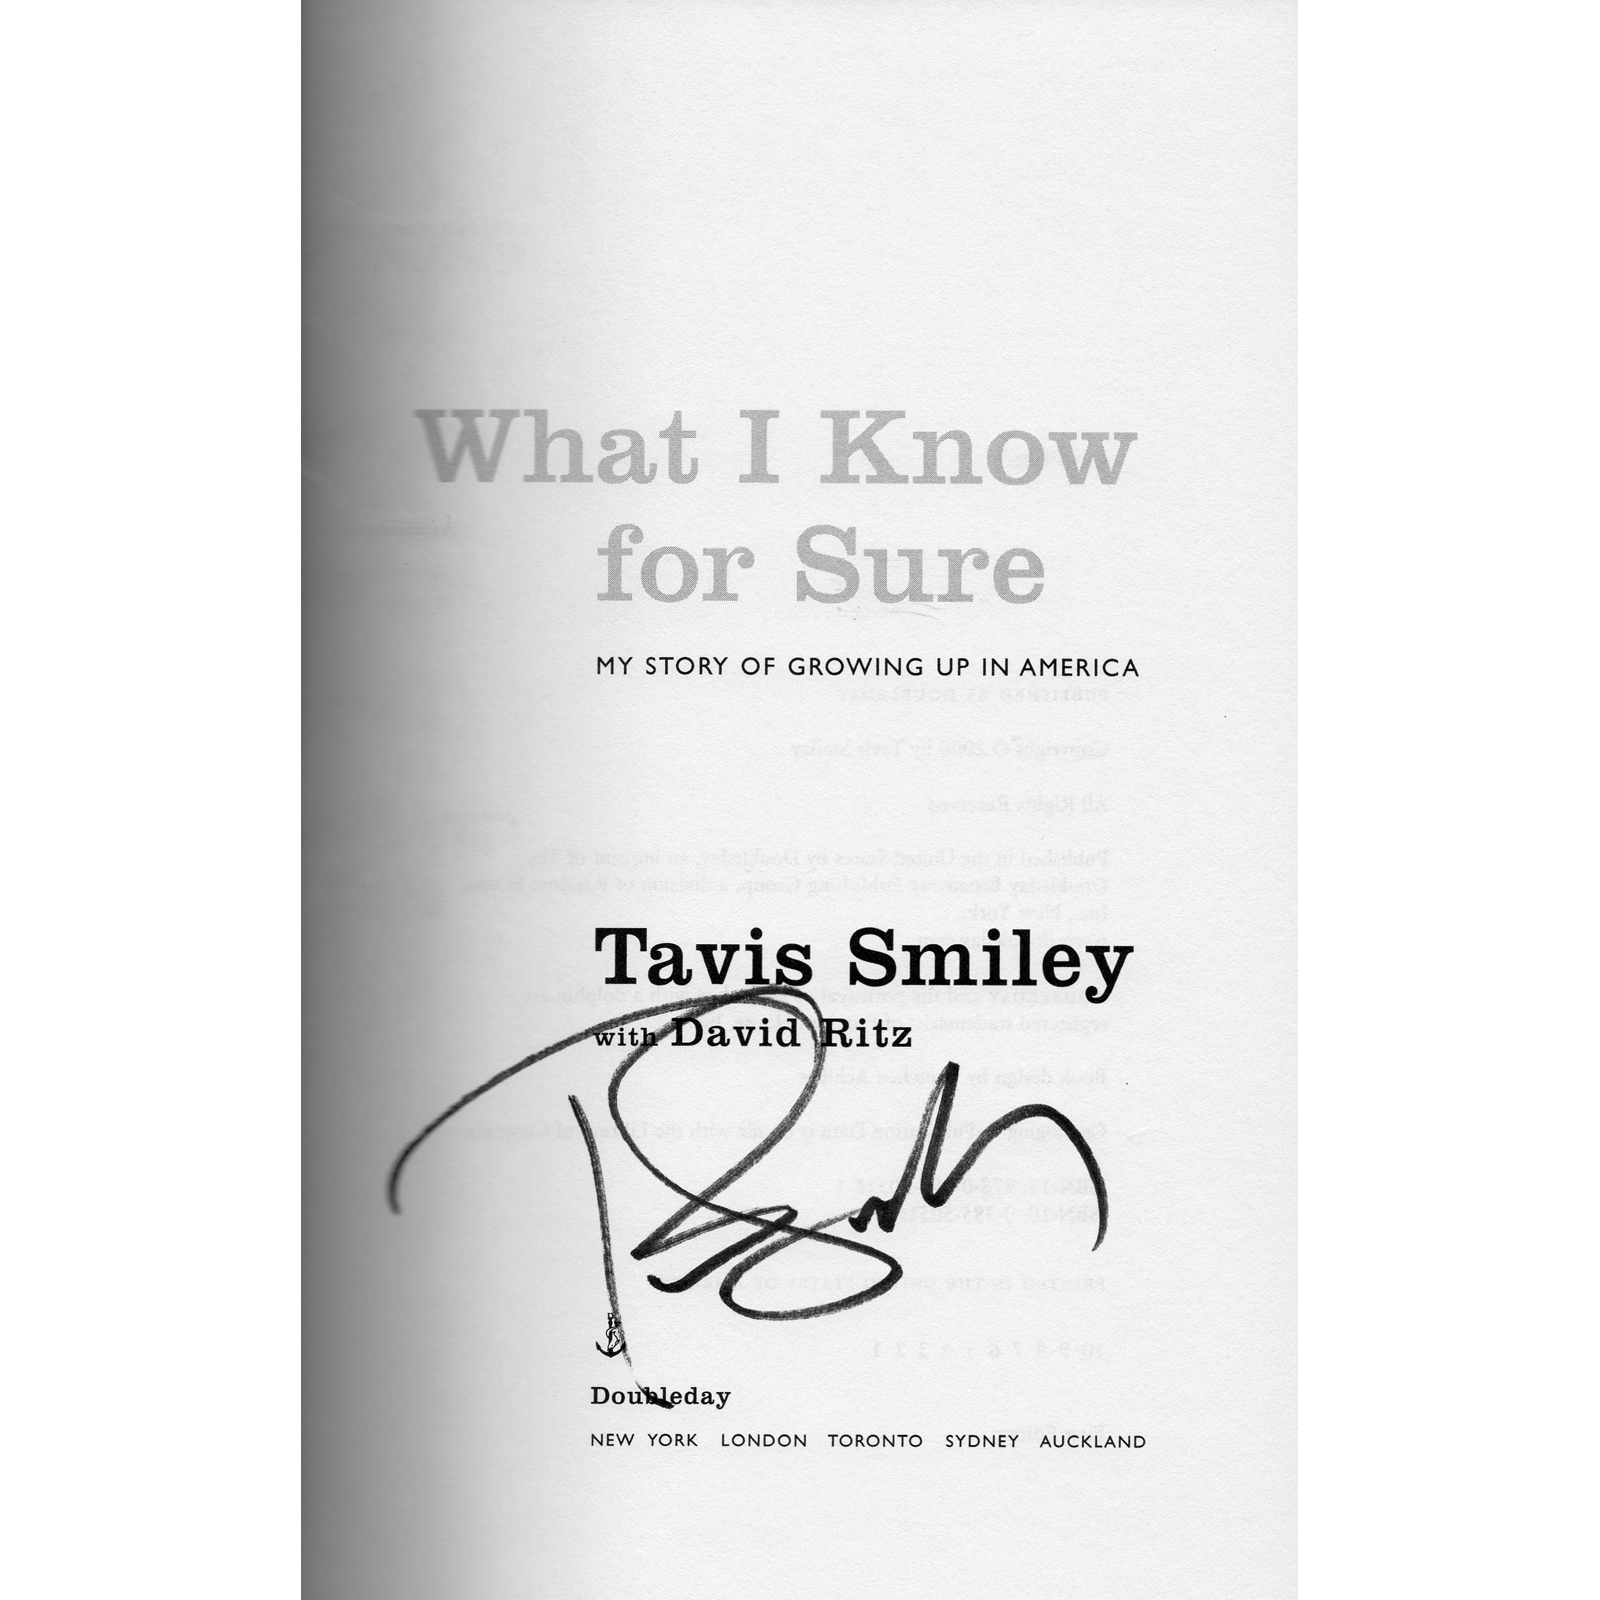 TAVIS SMILEY What I Know For Sure Book Autographed Signed Title Page